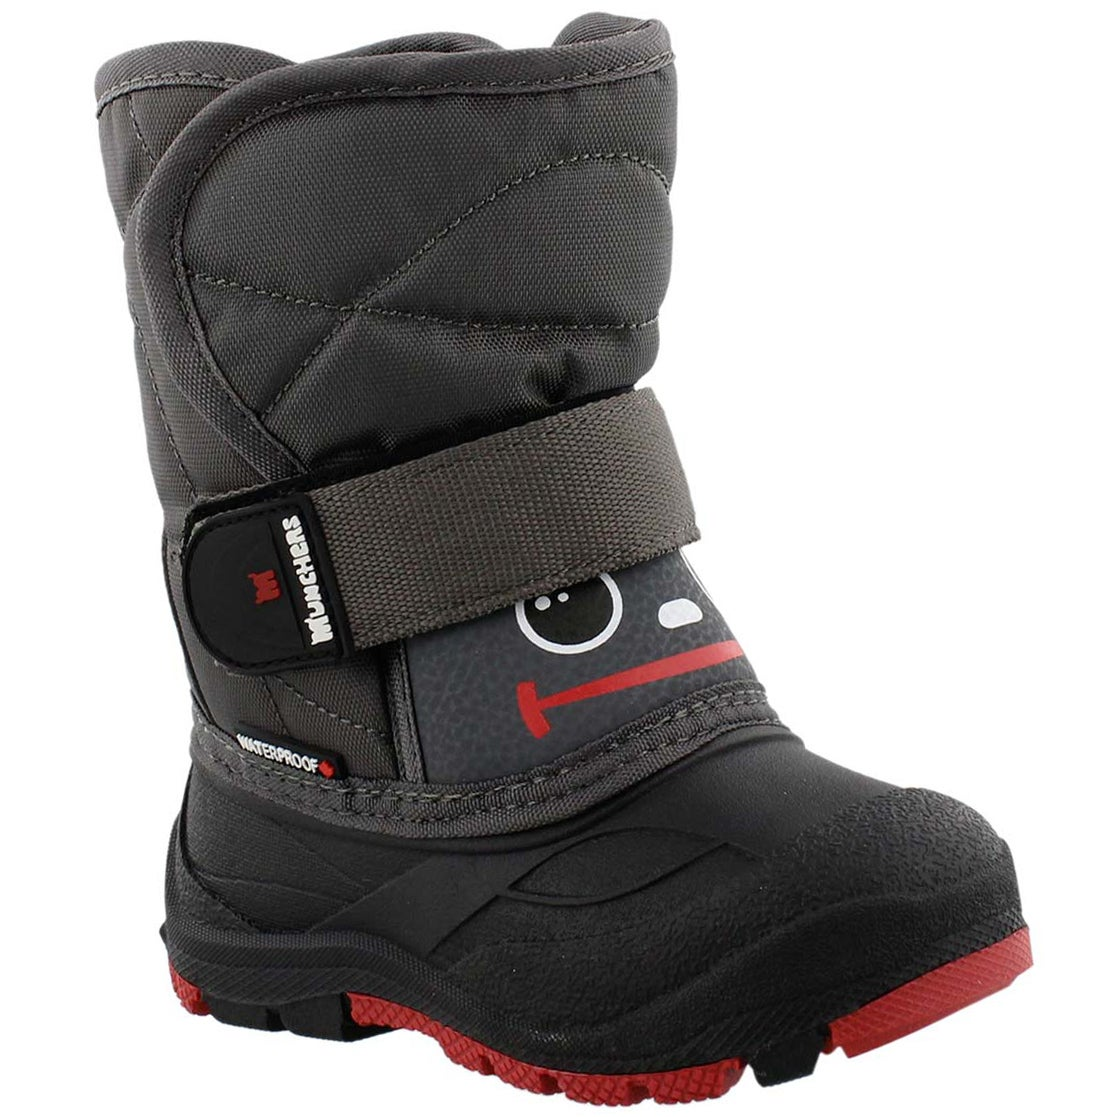 Boys' MINIMAX blk/char/rd waterproof winter boots